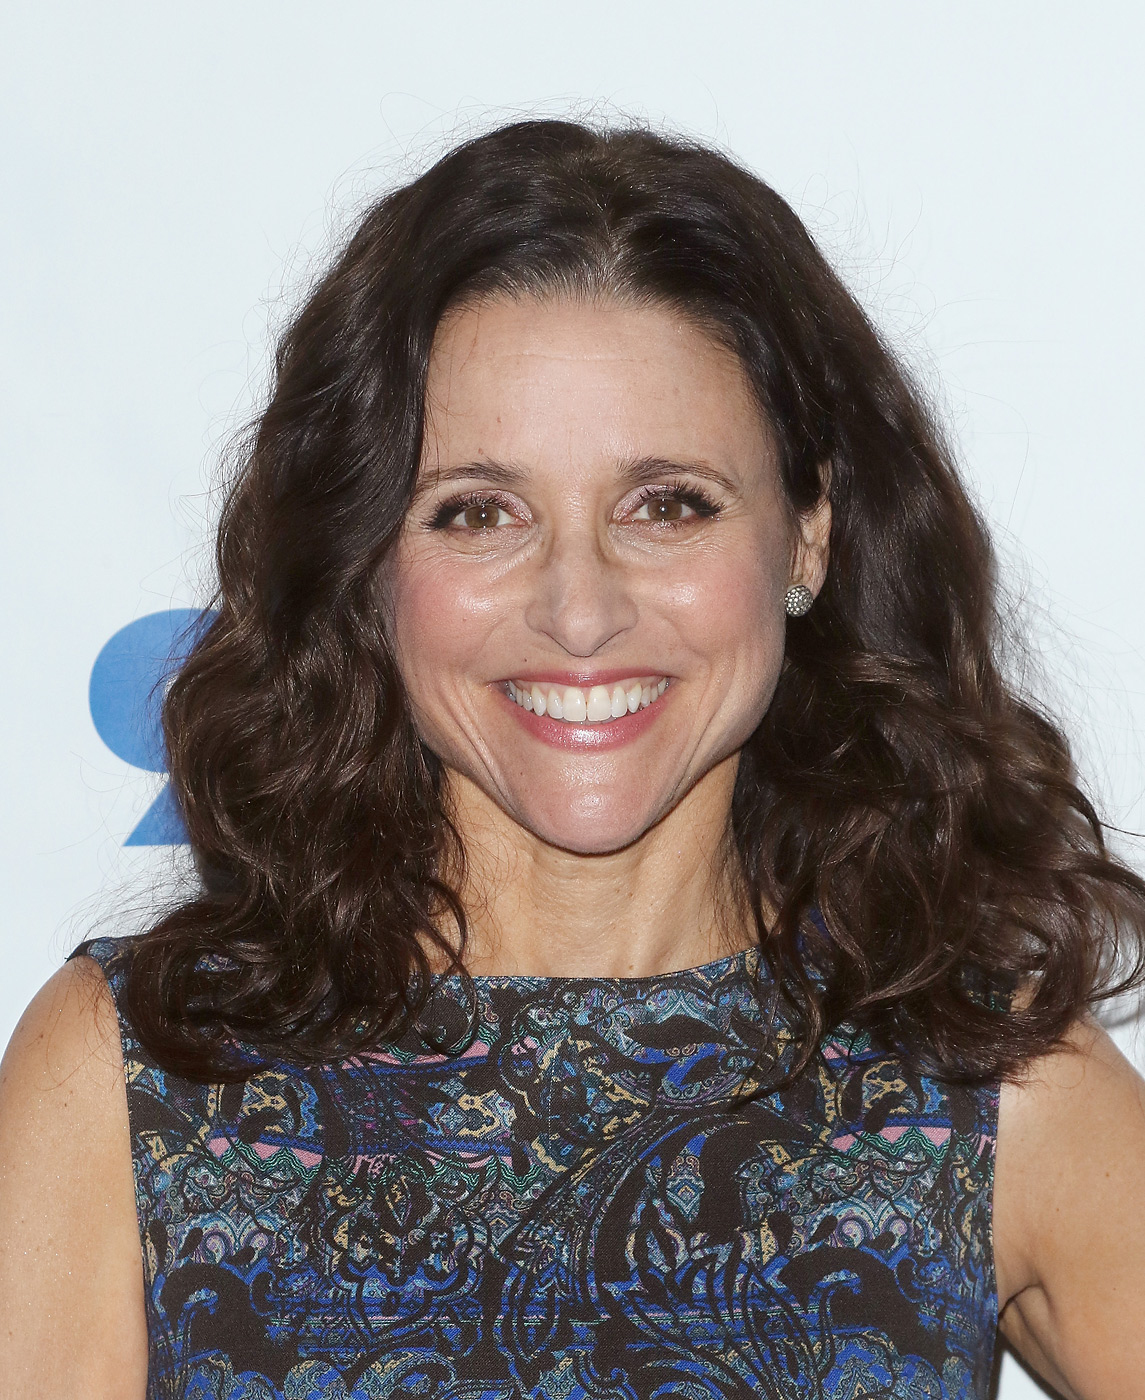 Actress Julia Louis-Dreyfus attends 92nd Street Y Presents: Julia Louis-Dreyfus in Conversation with Frank Rich at 92nd Street Y on April 9, 2015 in New York City.